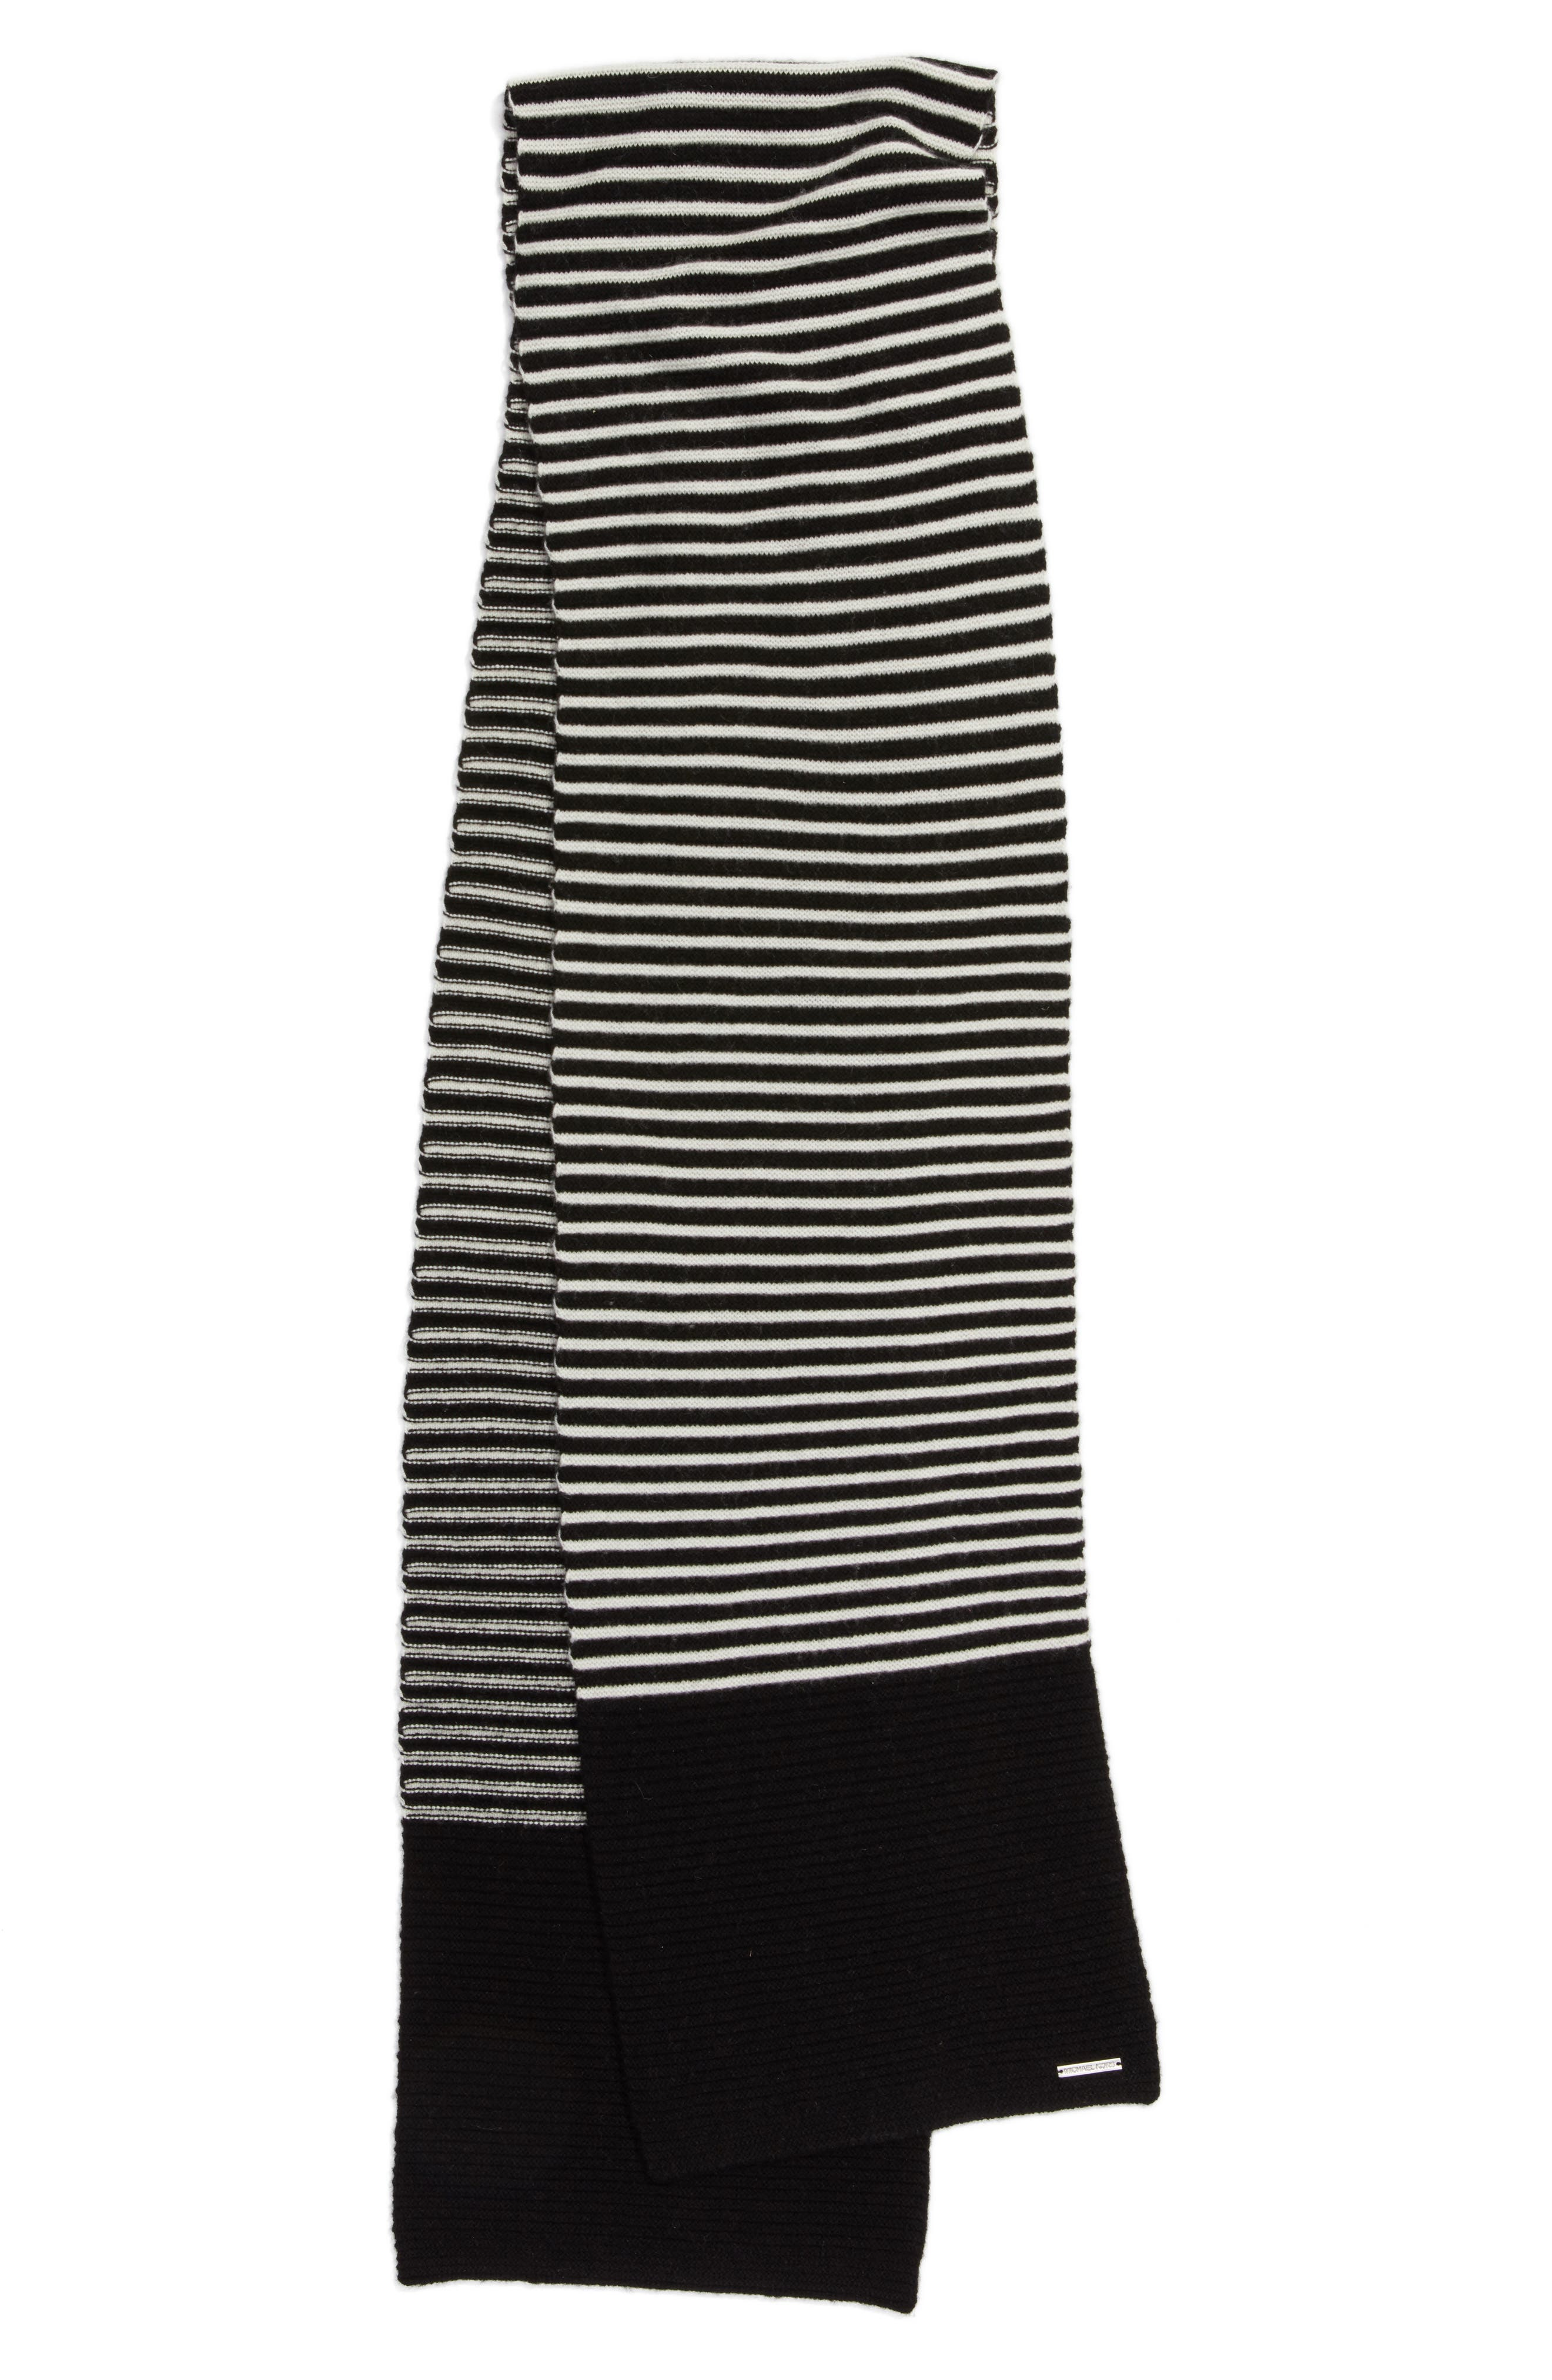 Double Links Wool & Cashmere Scarf,                             Alternate thumbnail 3, color,                             001